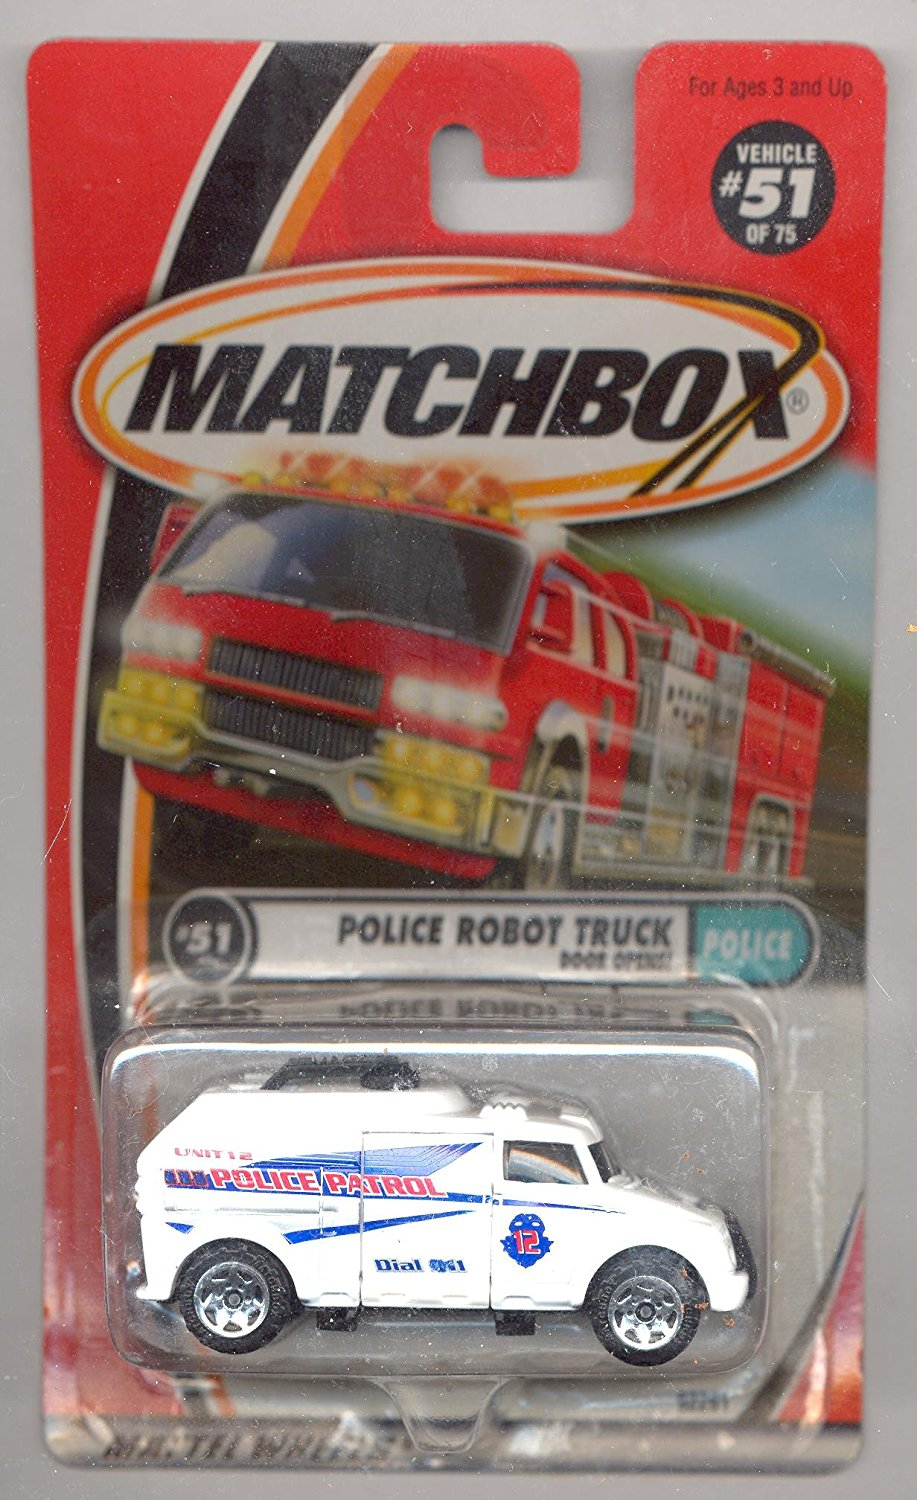 1999-51 75 Police WHITE Police Robot Truck 1:64 Scale, 1:64 Scale By Matchbox by